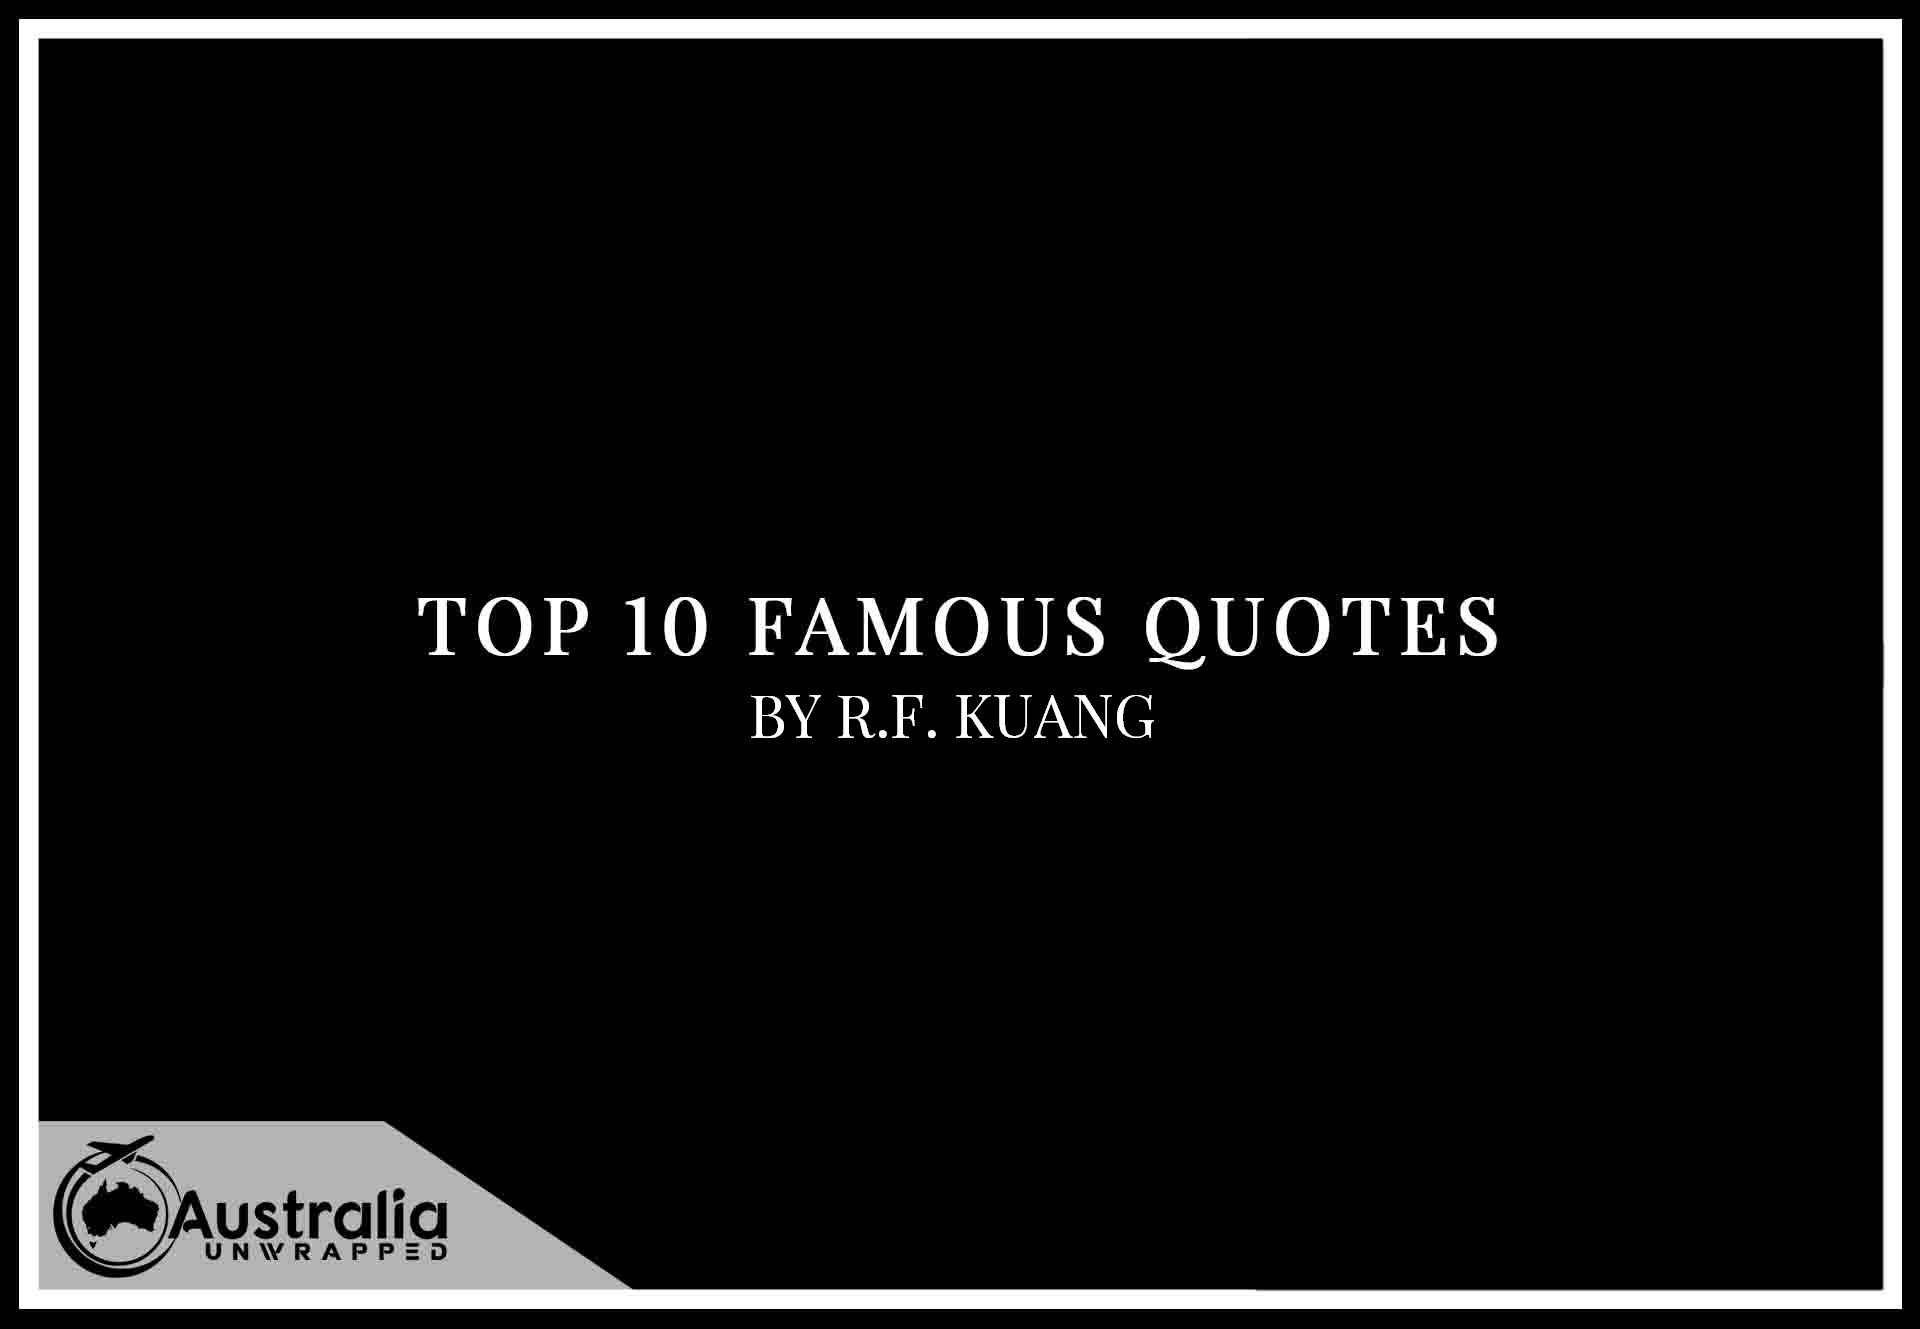 Top 10 Famous Quotes by Author R.F. Kuang